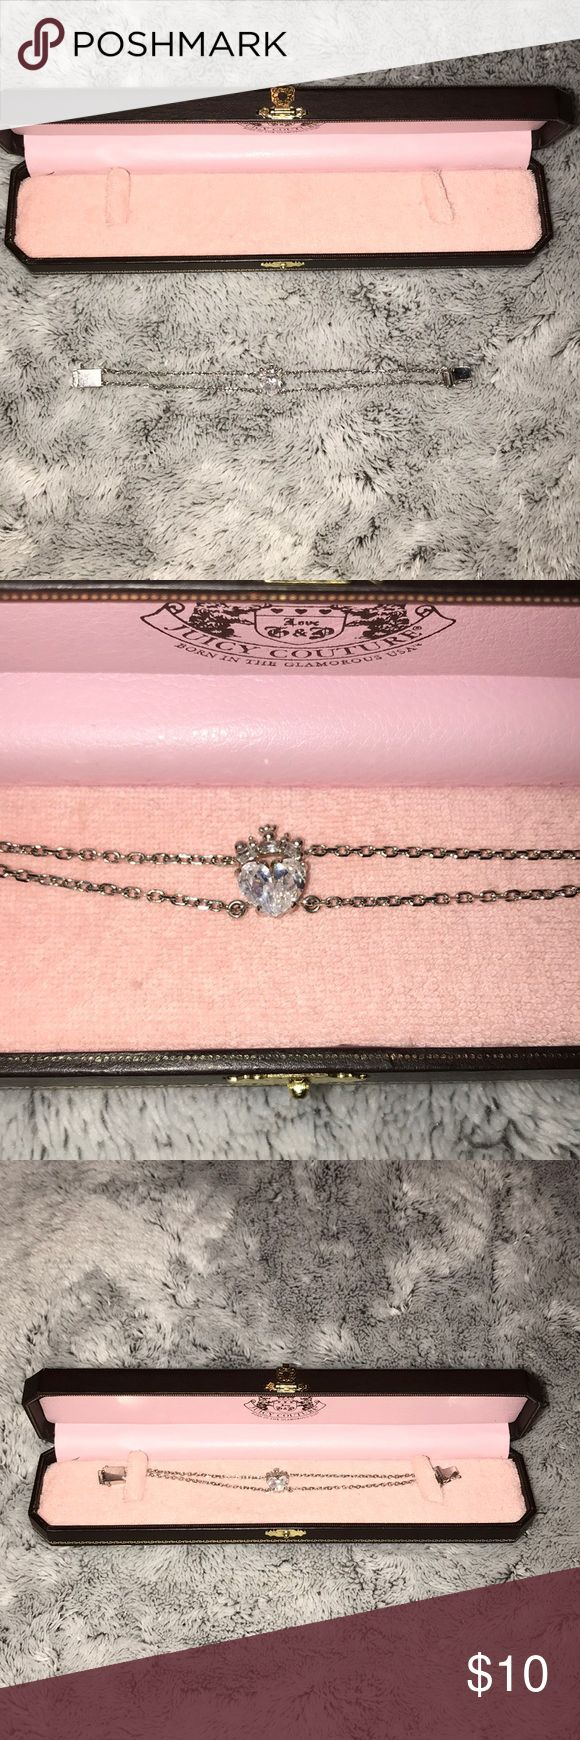 Juicy Couture Bracelet Juicy Couture Bracelet Comes with original box! Juicy Couture Jewelry Bracelets